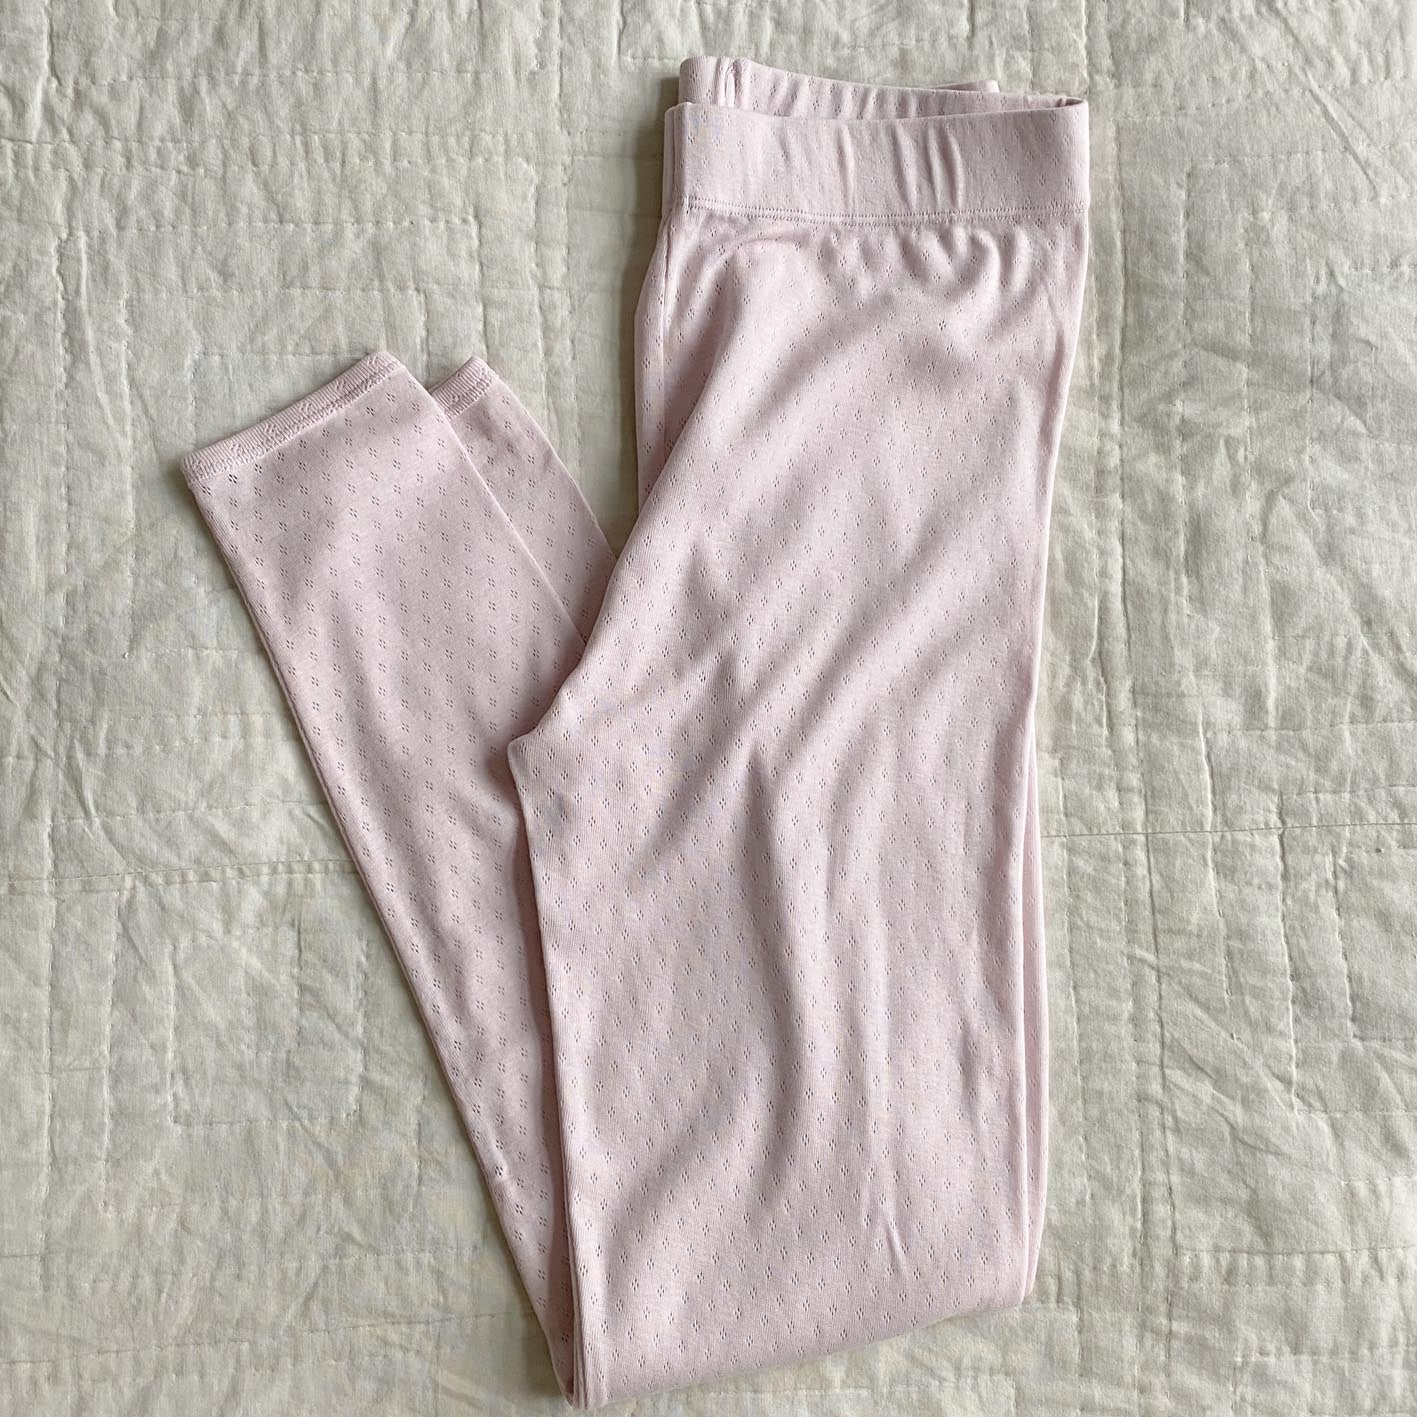 ELLY PYJAMAS LEGGINGS // WOMEN // PINK CLOUD ORGANIC POINTELLE JERSEY